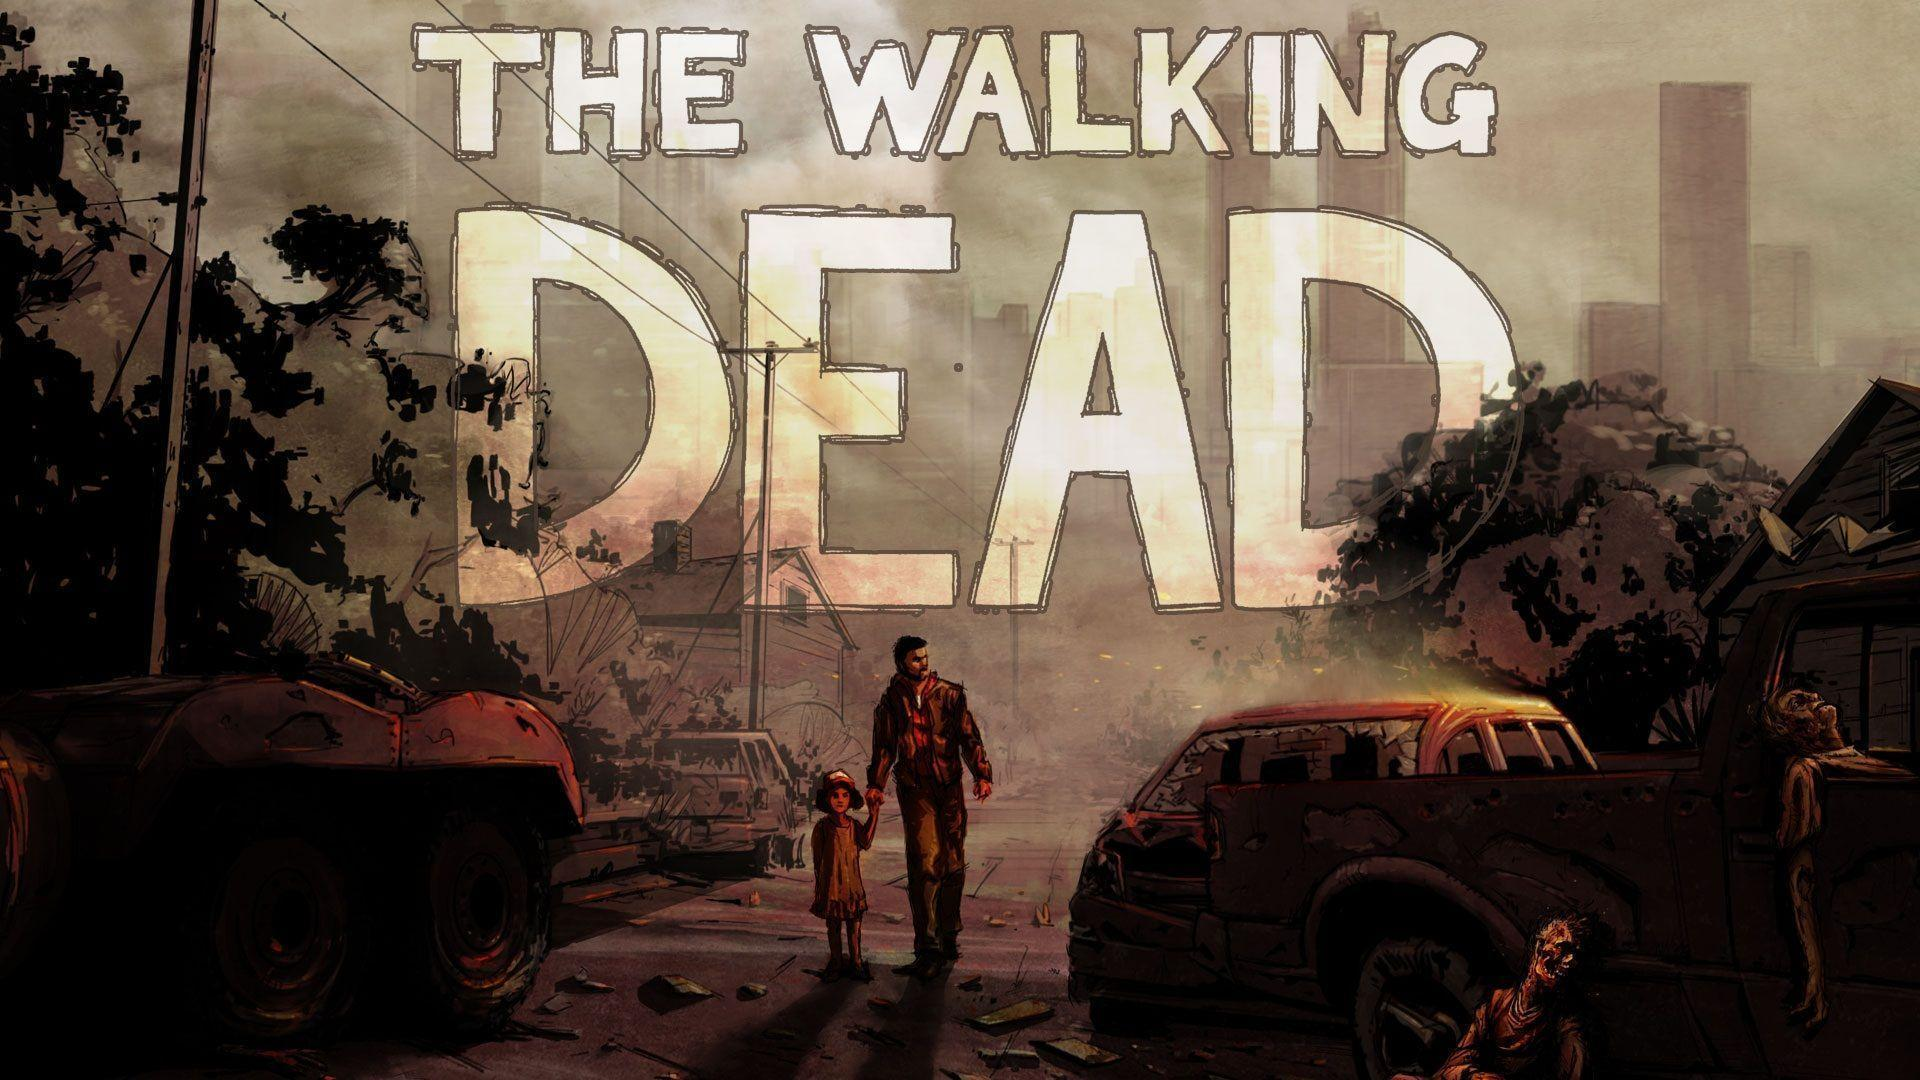 The Walking Dead Game Wallpapers Wallpaper Cave